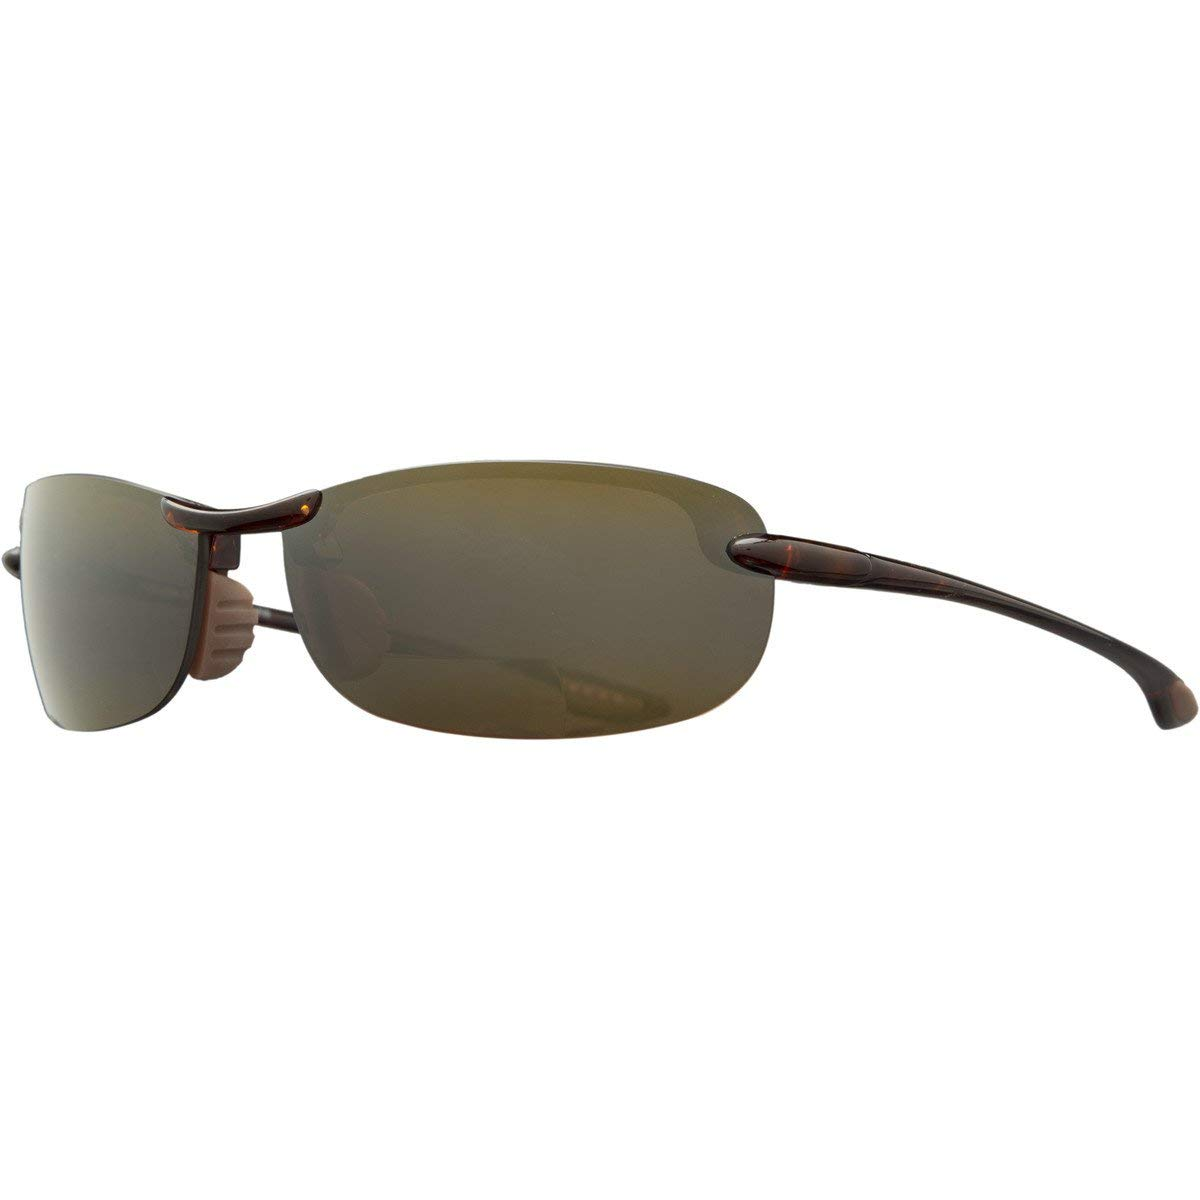 1e1311b58e Get Quotations · Maui Jim H805N-1025 Makaha Tortoise HCL Bronze +2.50  Reader Lens Sunglasses NEW